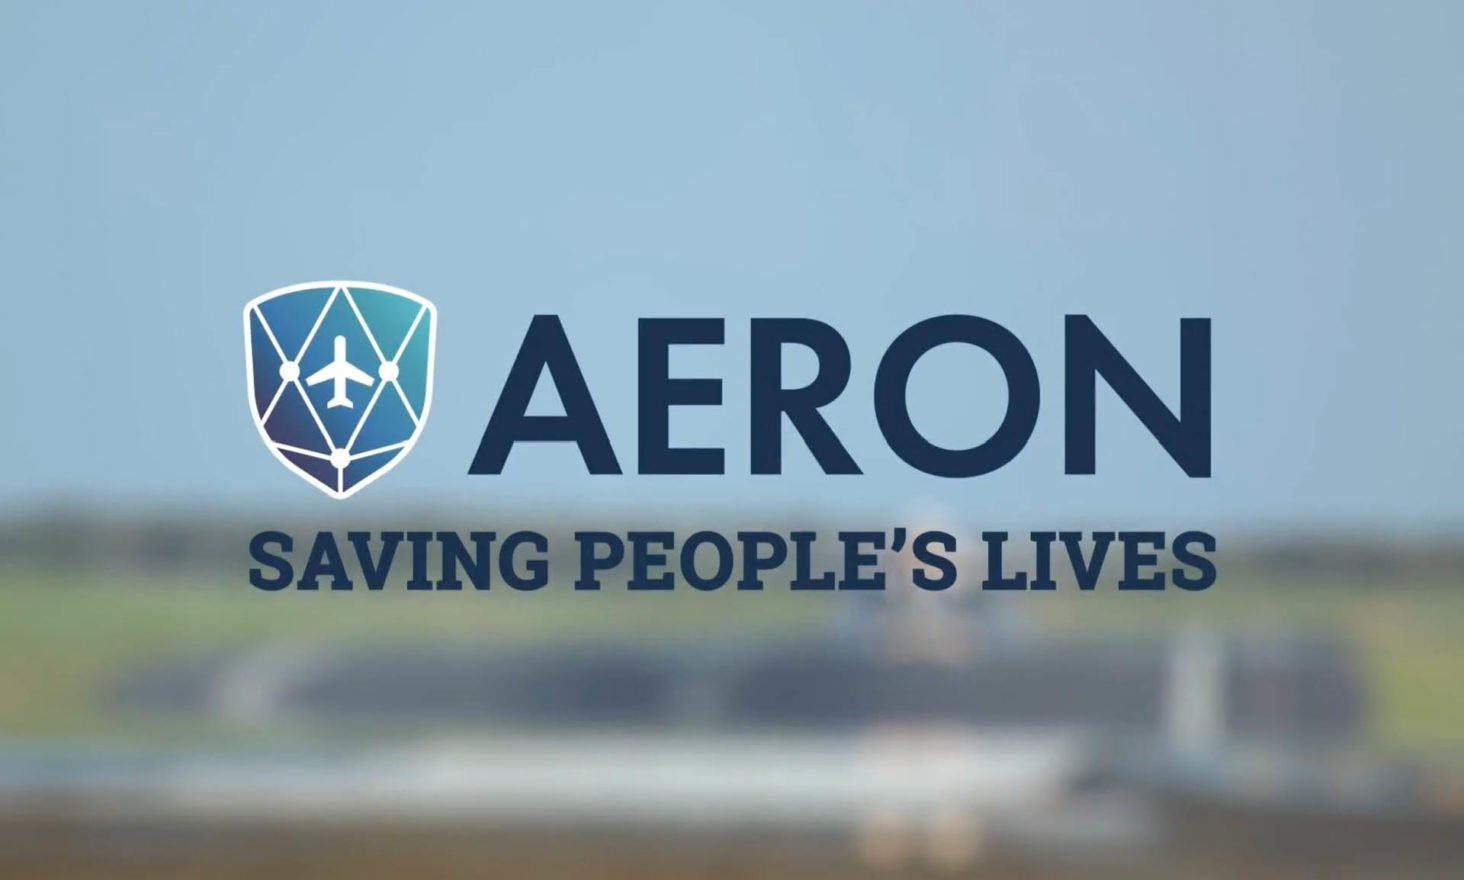 Blockchain Startup Aeron Announces Crowdsale for its Decentralized Aviation Record System